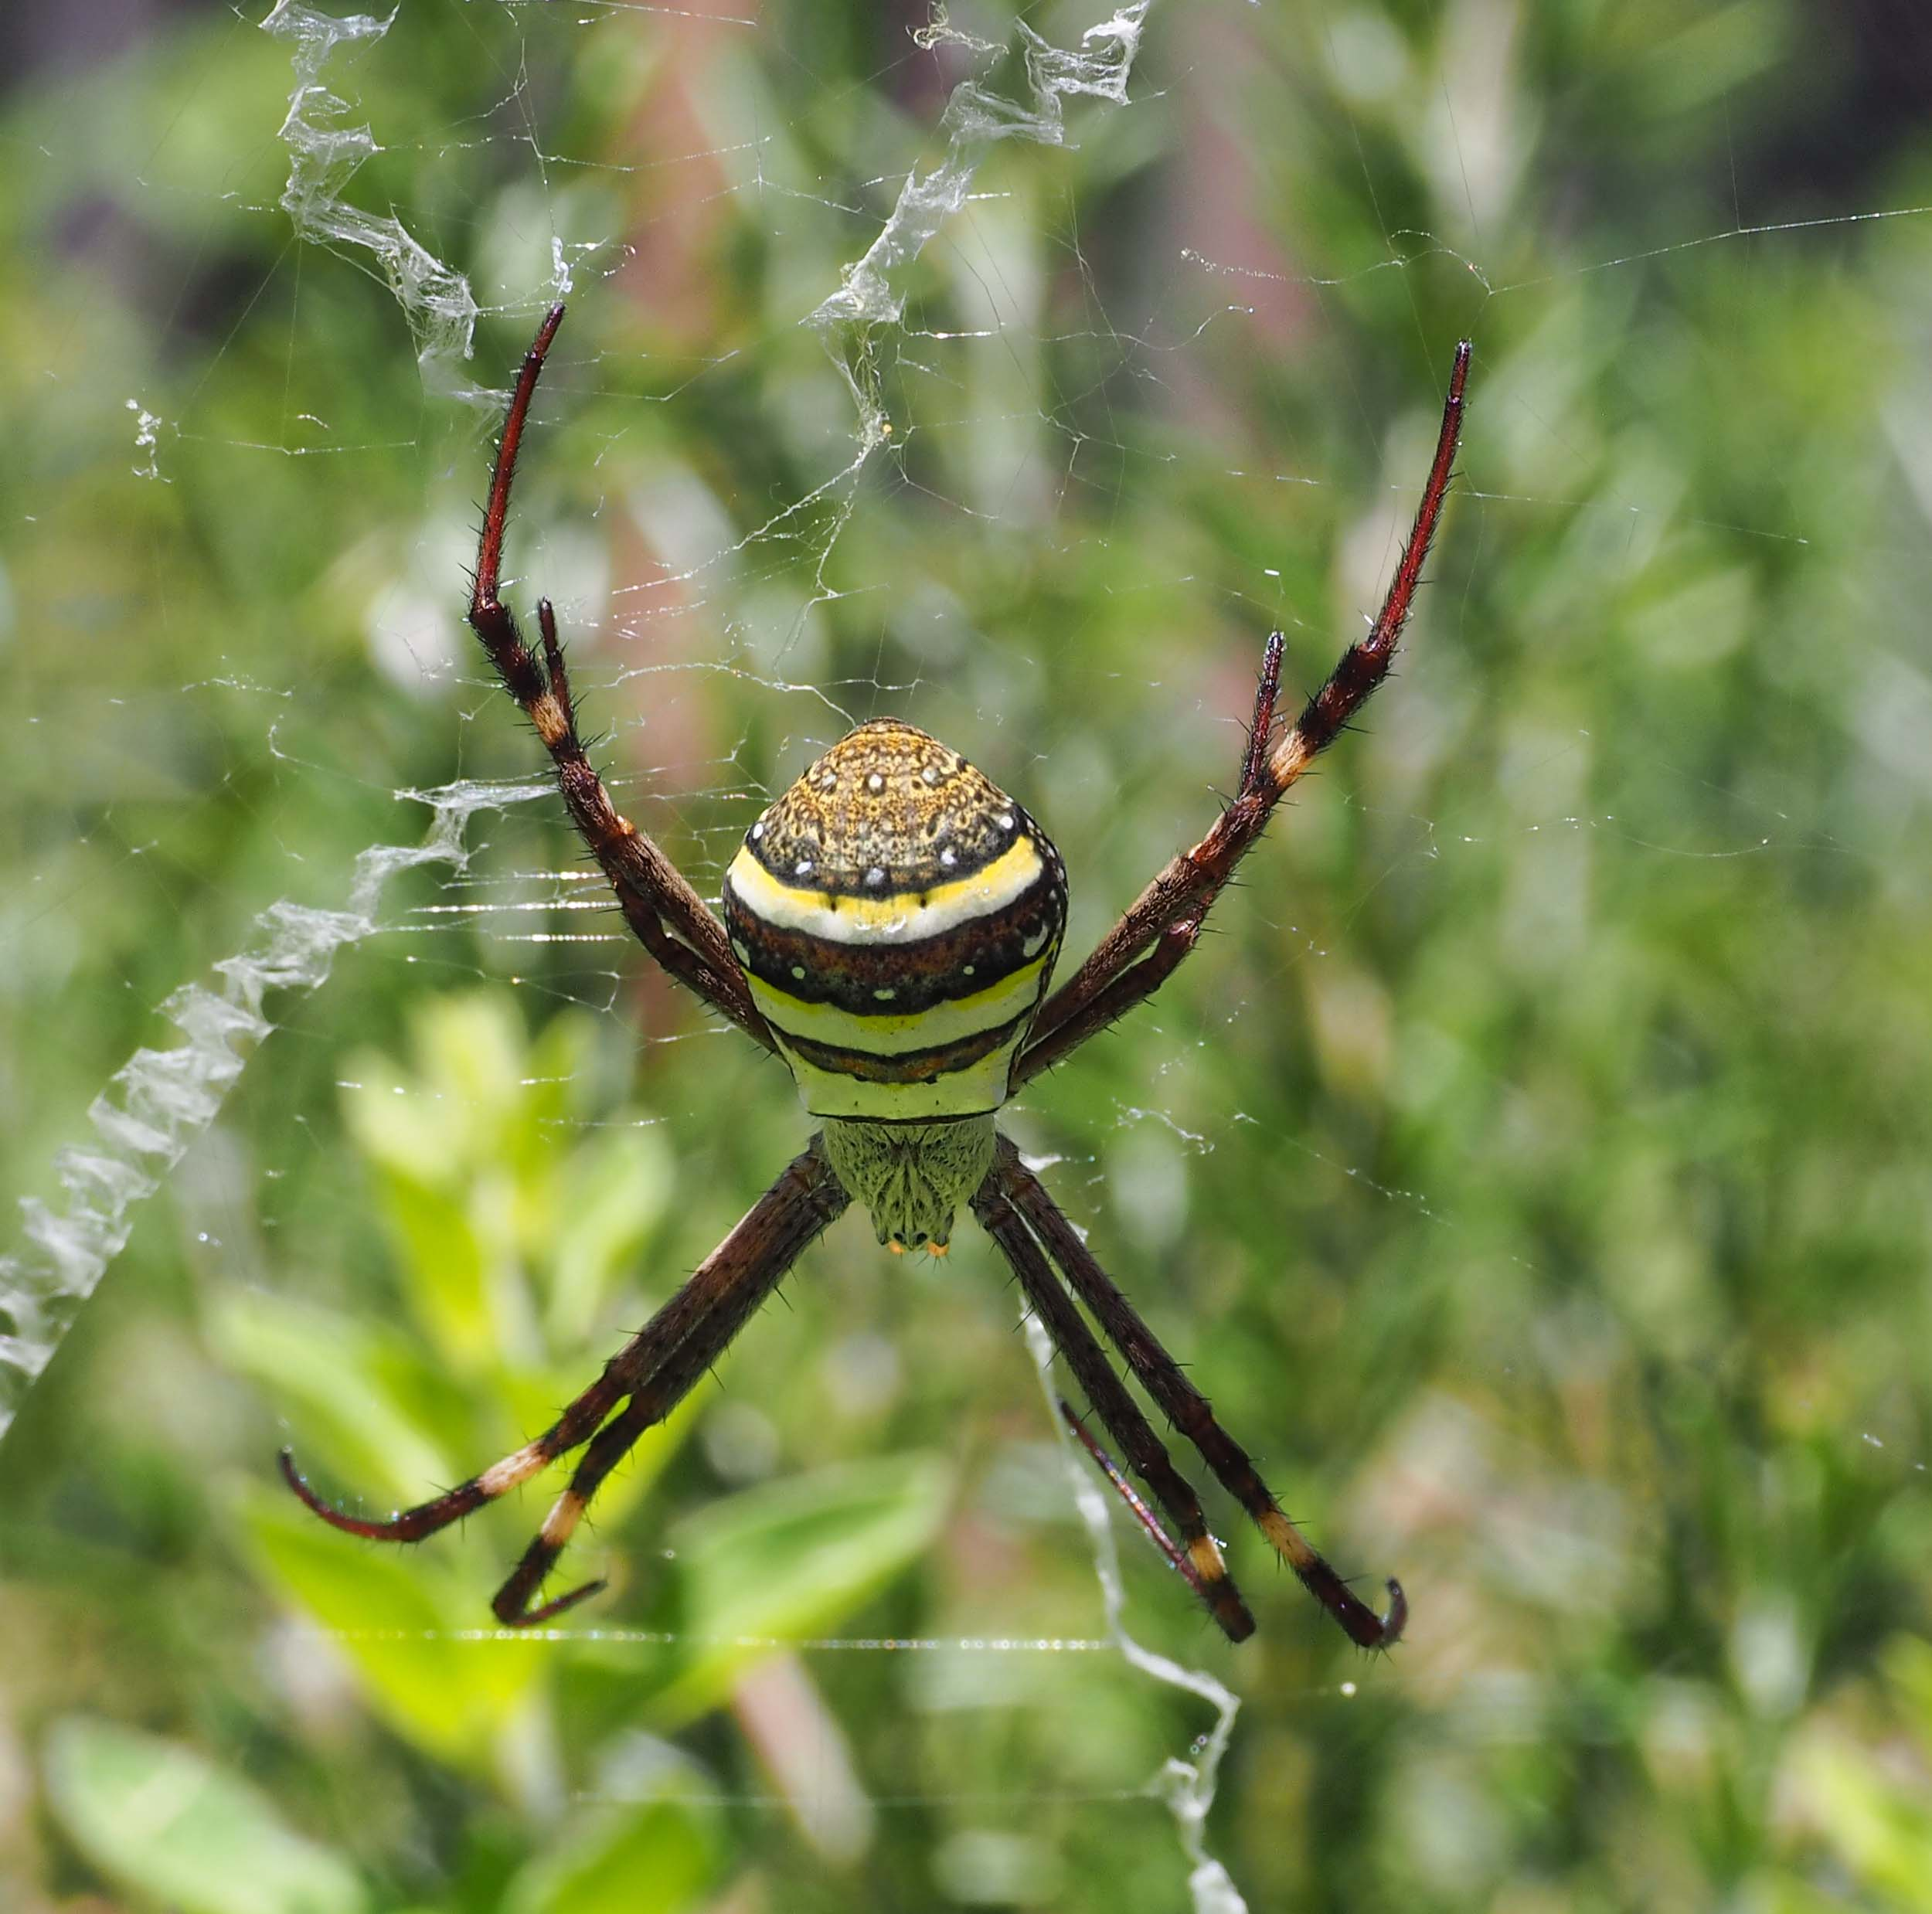 The female  A. keyserlingi  is 16-20mm long from the front to the back of the body (excluding legs). This one is sitting in the web in a typical resting posture - on each side of the body, the first and second legs are held together as are the third and fourth.